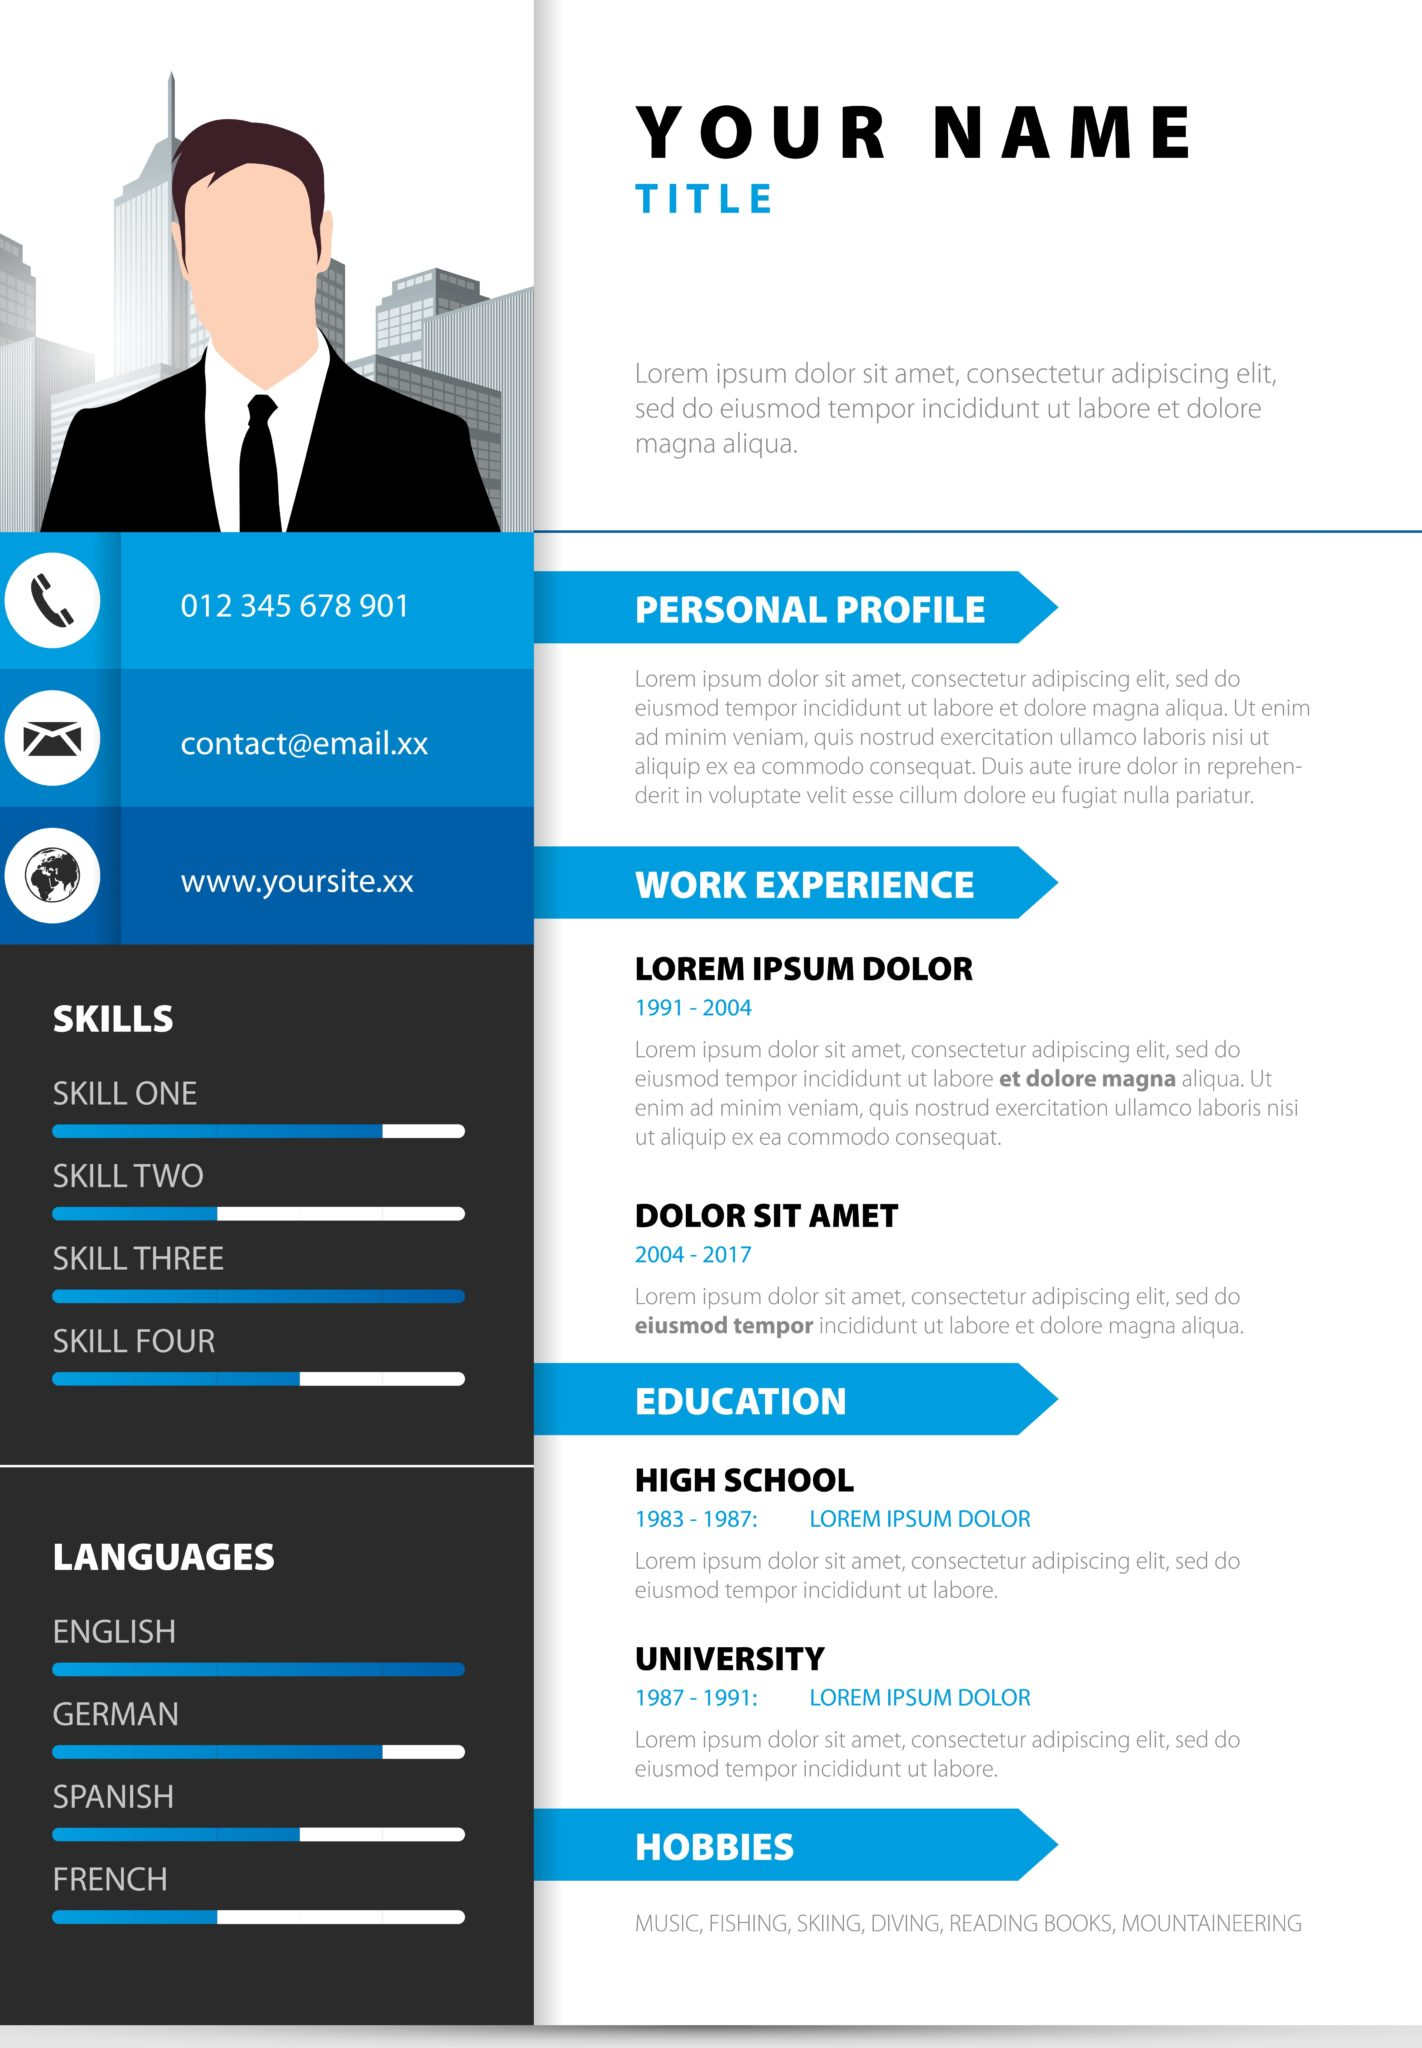 Sample Resume - RPA - Edureka